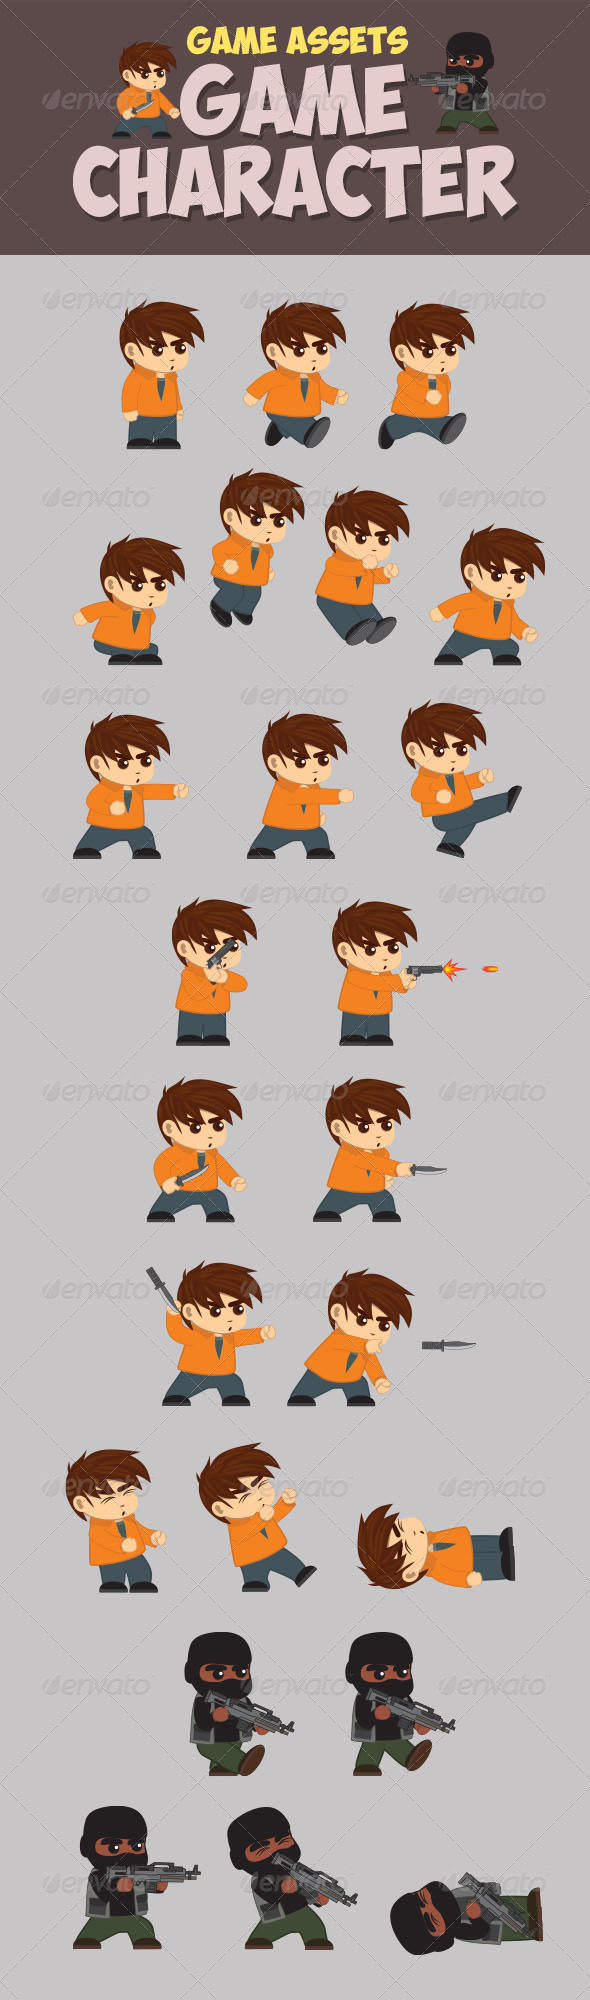 GraphicRiver Game Asset Game Character 8051231